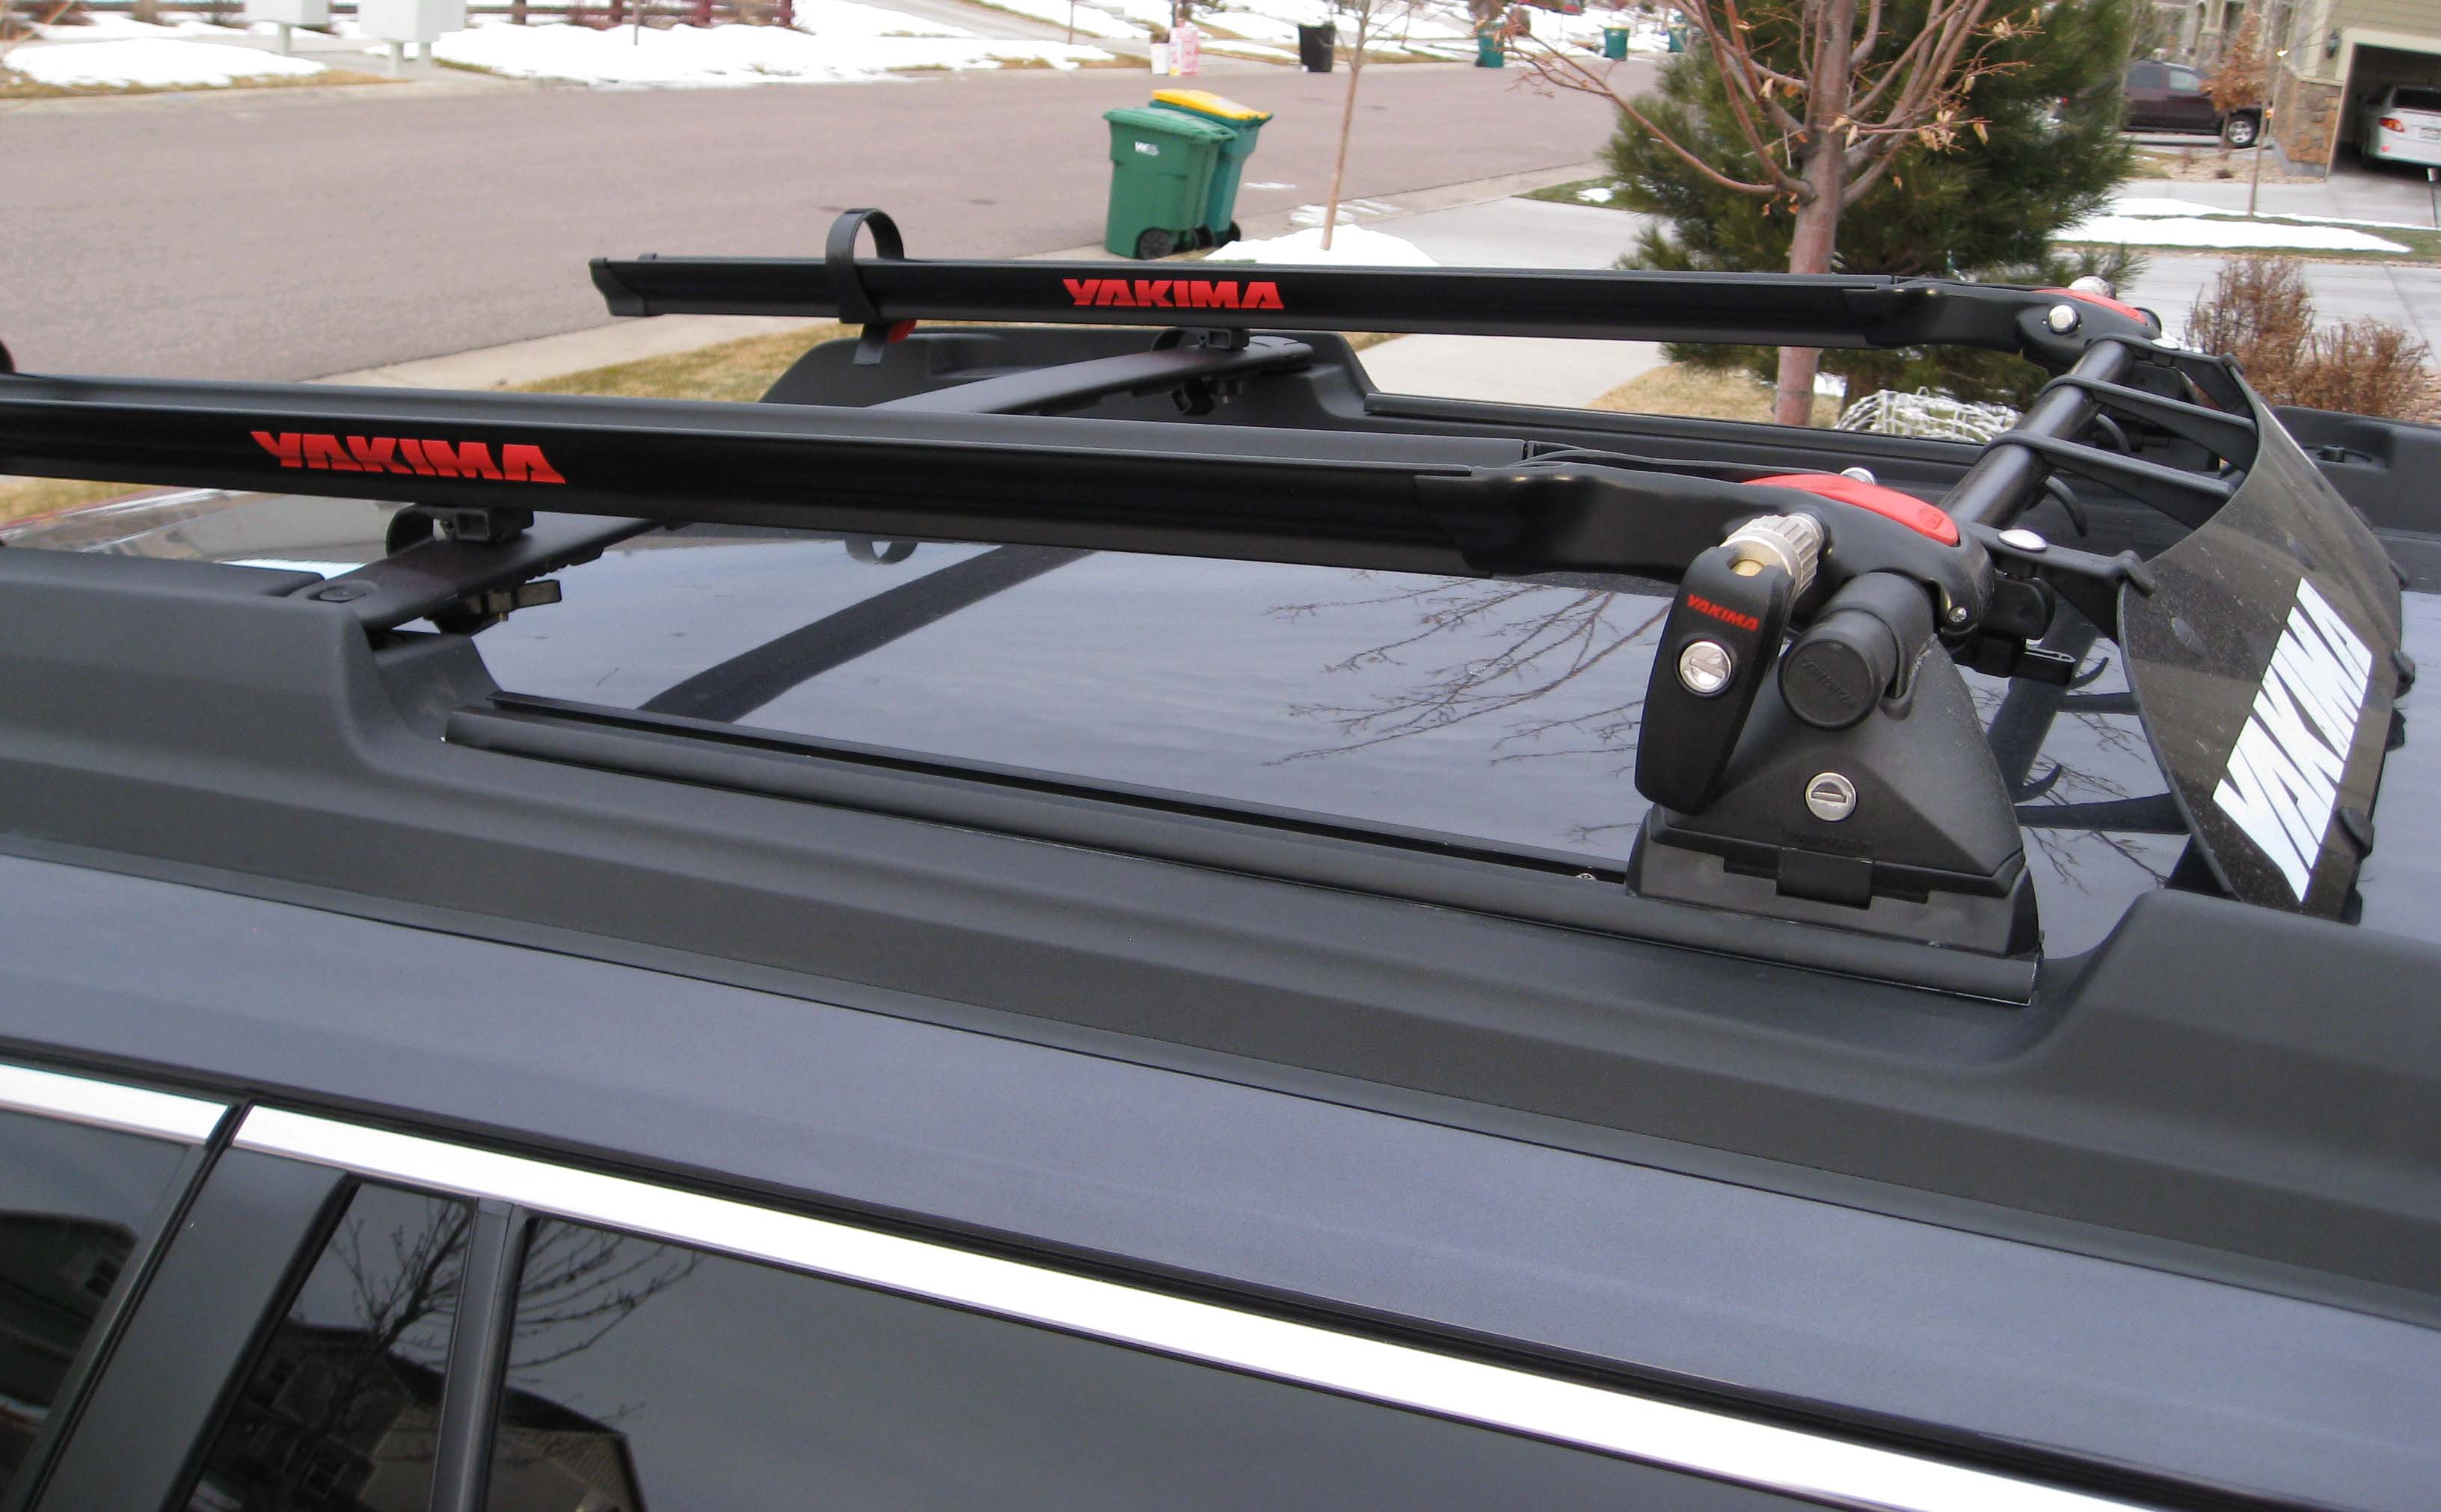 treehugger subaru are cars roof rack with racks a drag